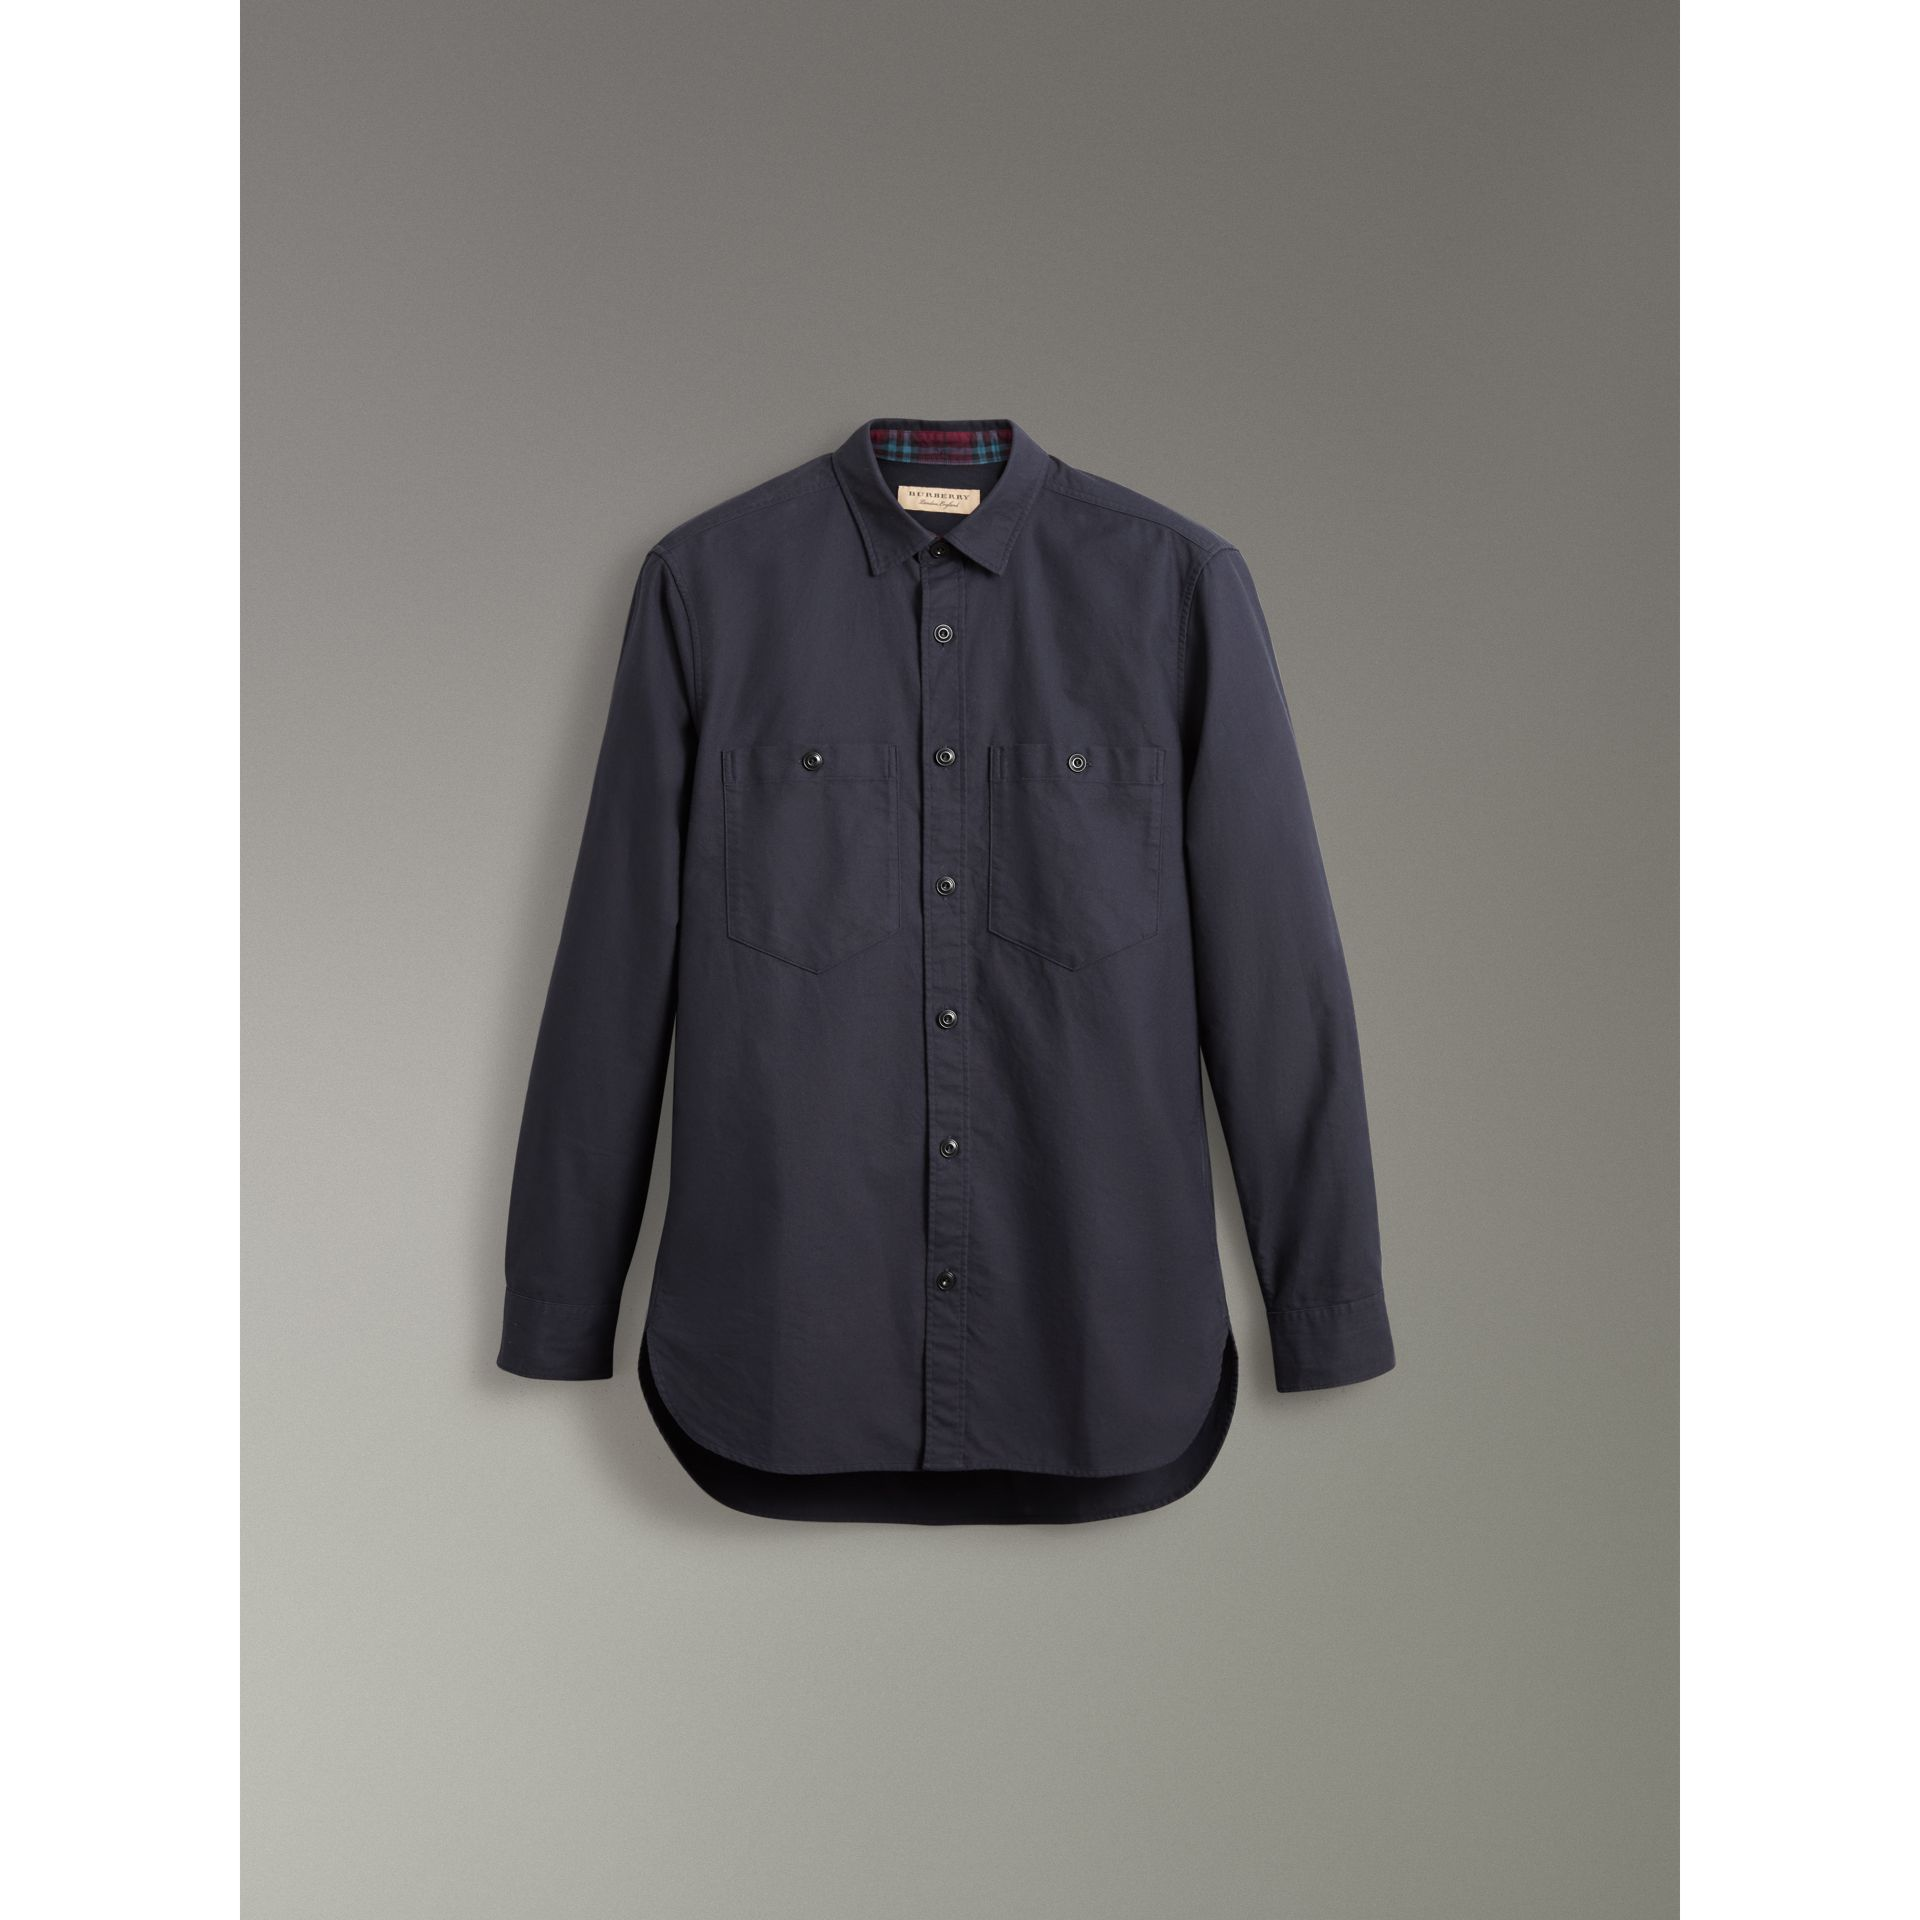 Cotton Oxford Shirt in Navy Blue - Men | Burberry - gallery image 3